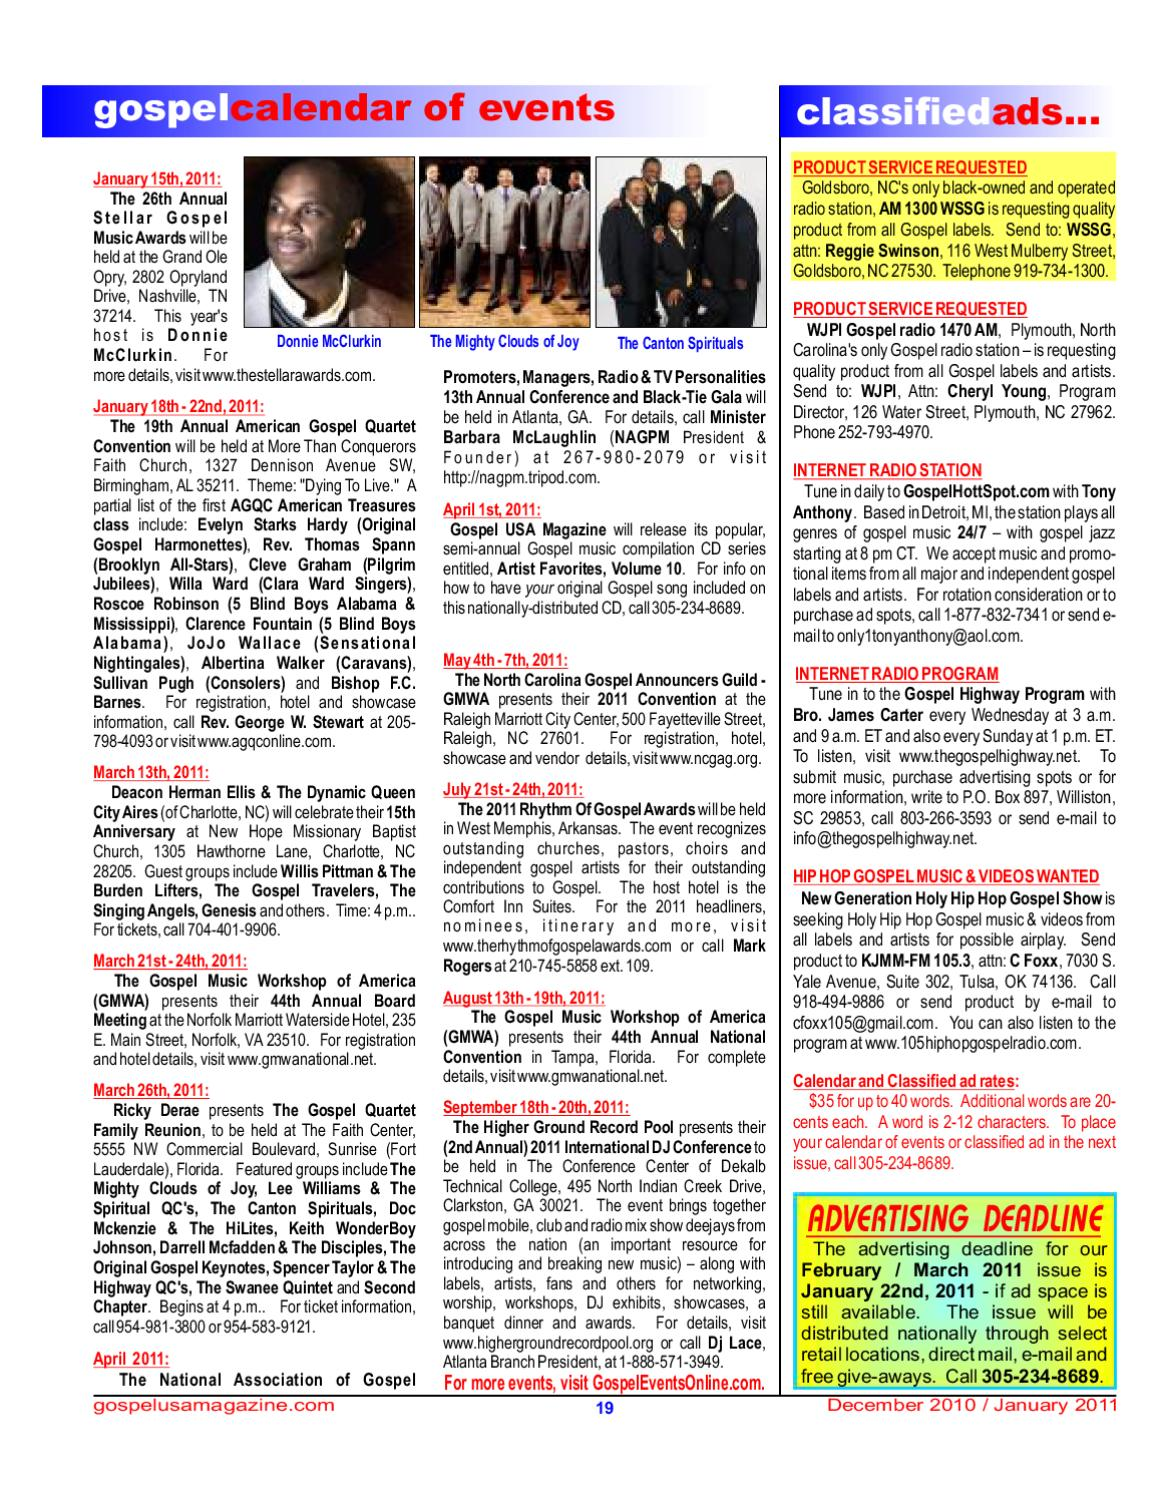 Dec 10 / Jan 11 issue - 20 sample pages by Gospel USA